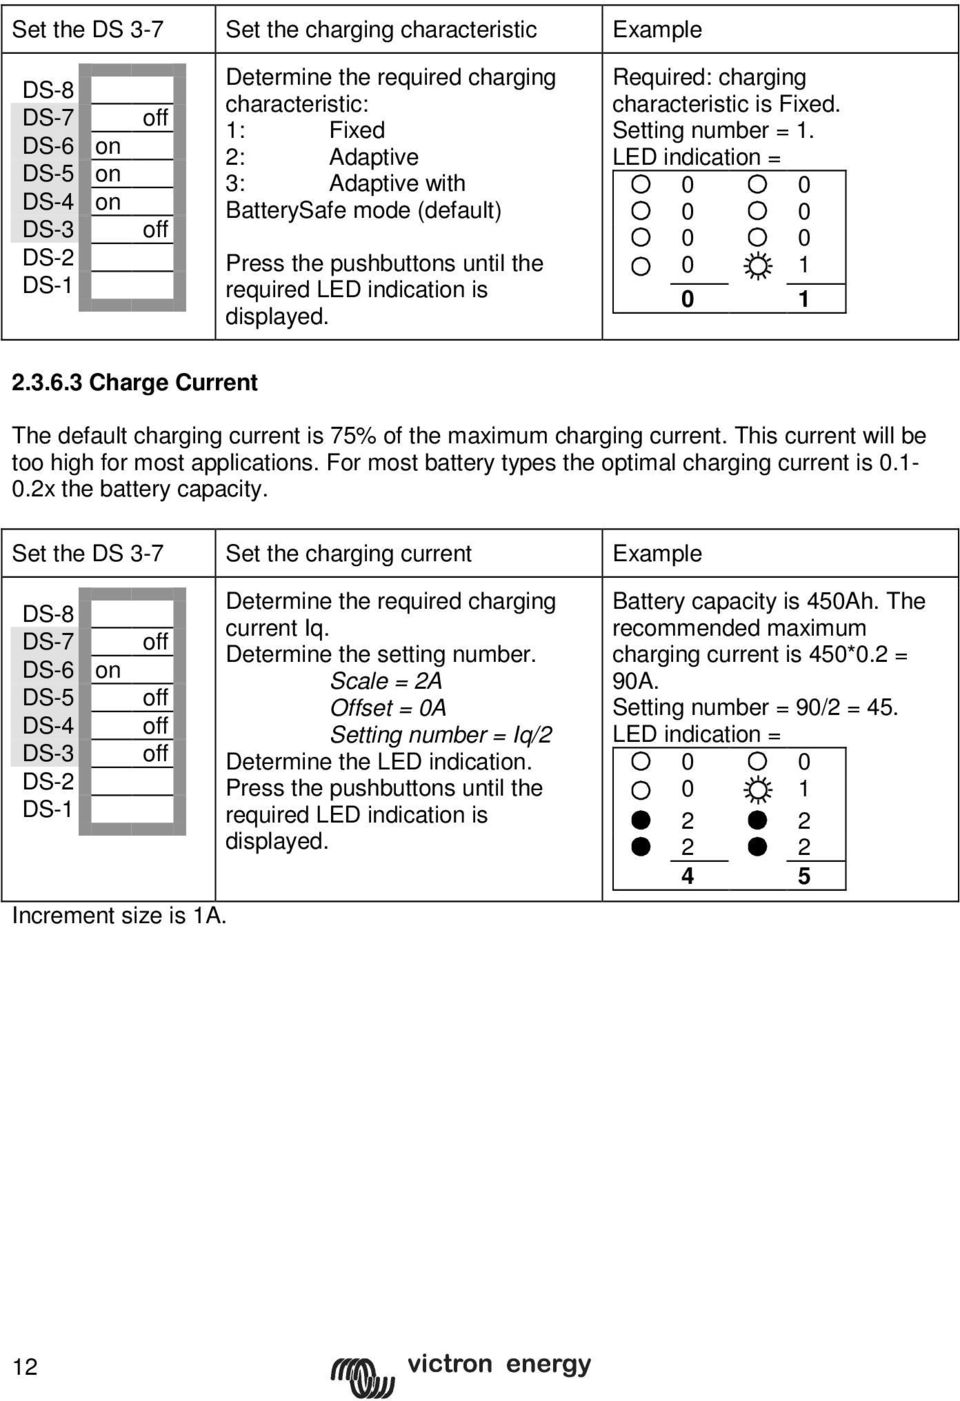 3 Charge Current The default charging current is 75% of the maximum charging current. This current will be too high for most applications. For most battery types the optimal charging current is 0.1-0.